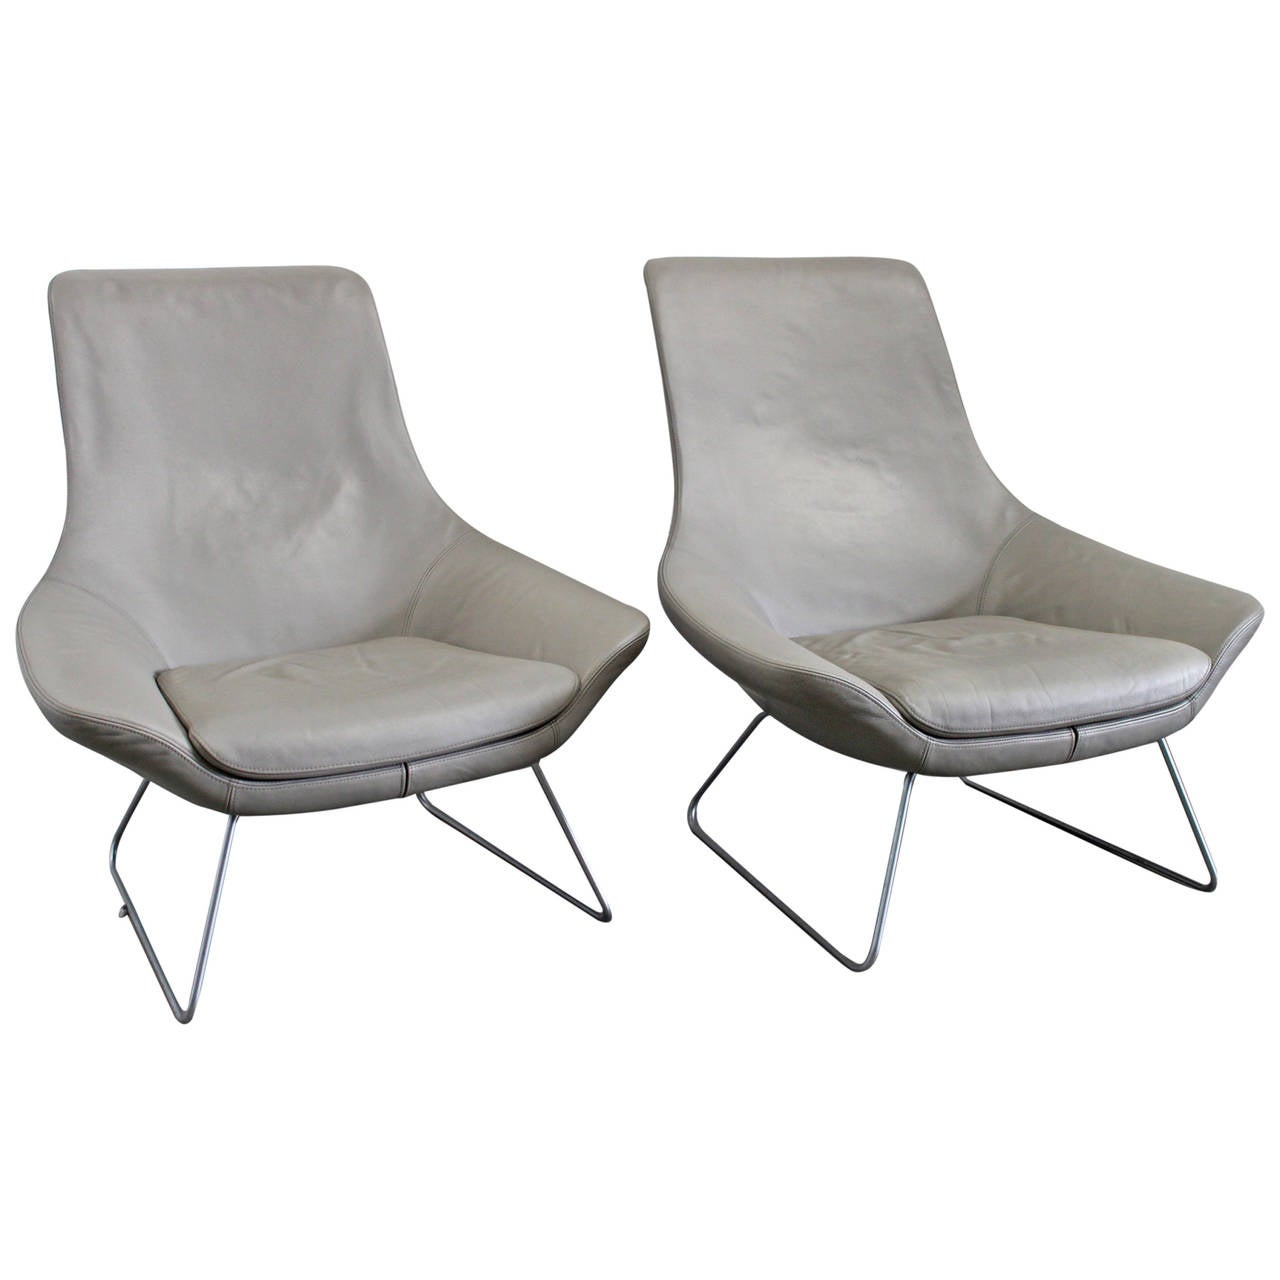 Walter knoll flow 210 10 armchairs in grey leather by walter knoll flow 210 10 armchairs in grey leather by pearsonlloyd 1 parisarafo Gallery